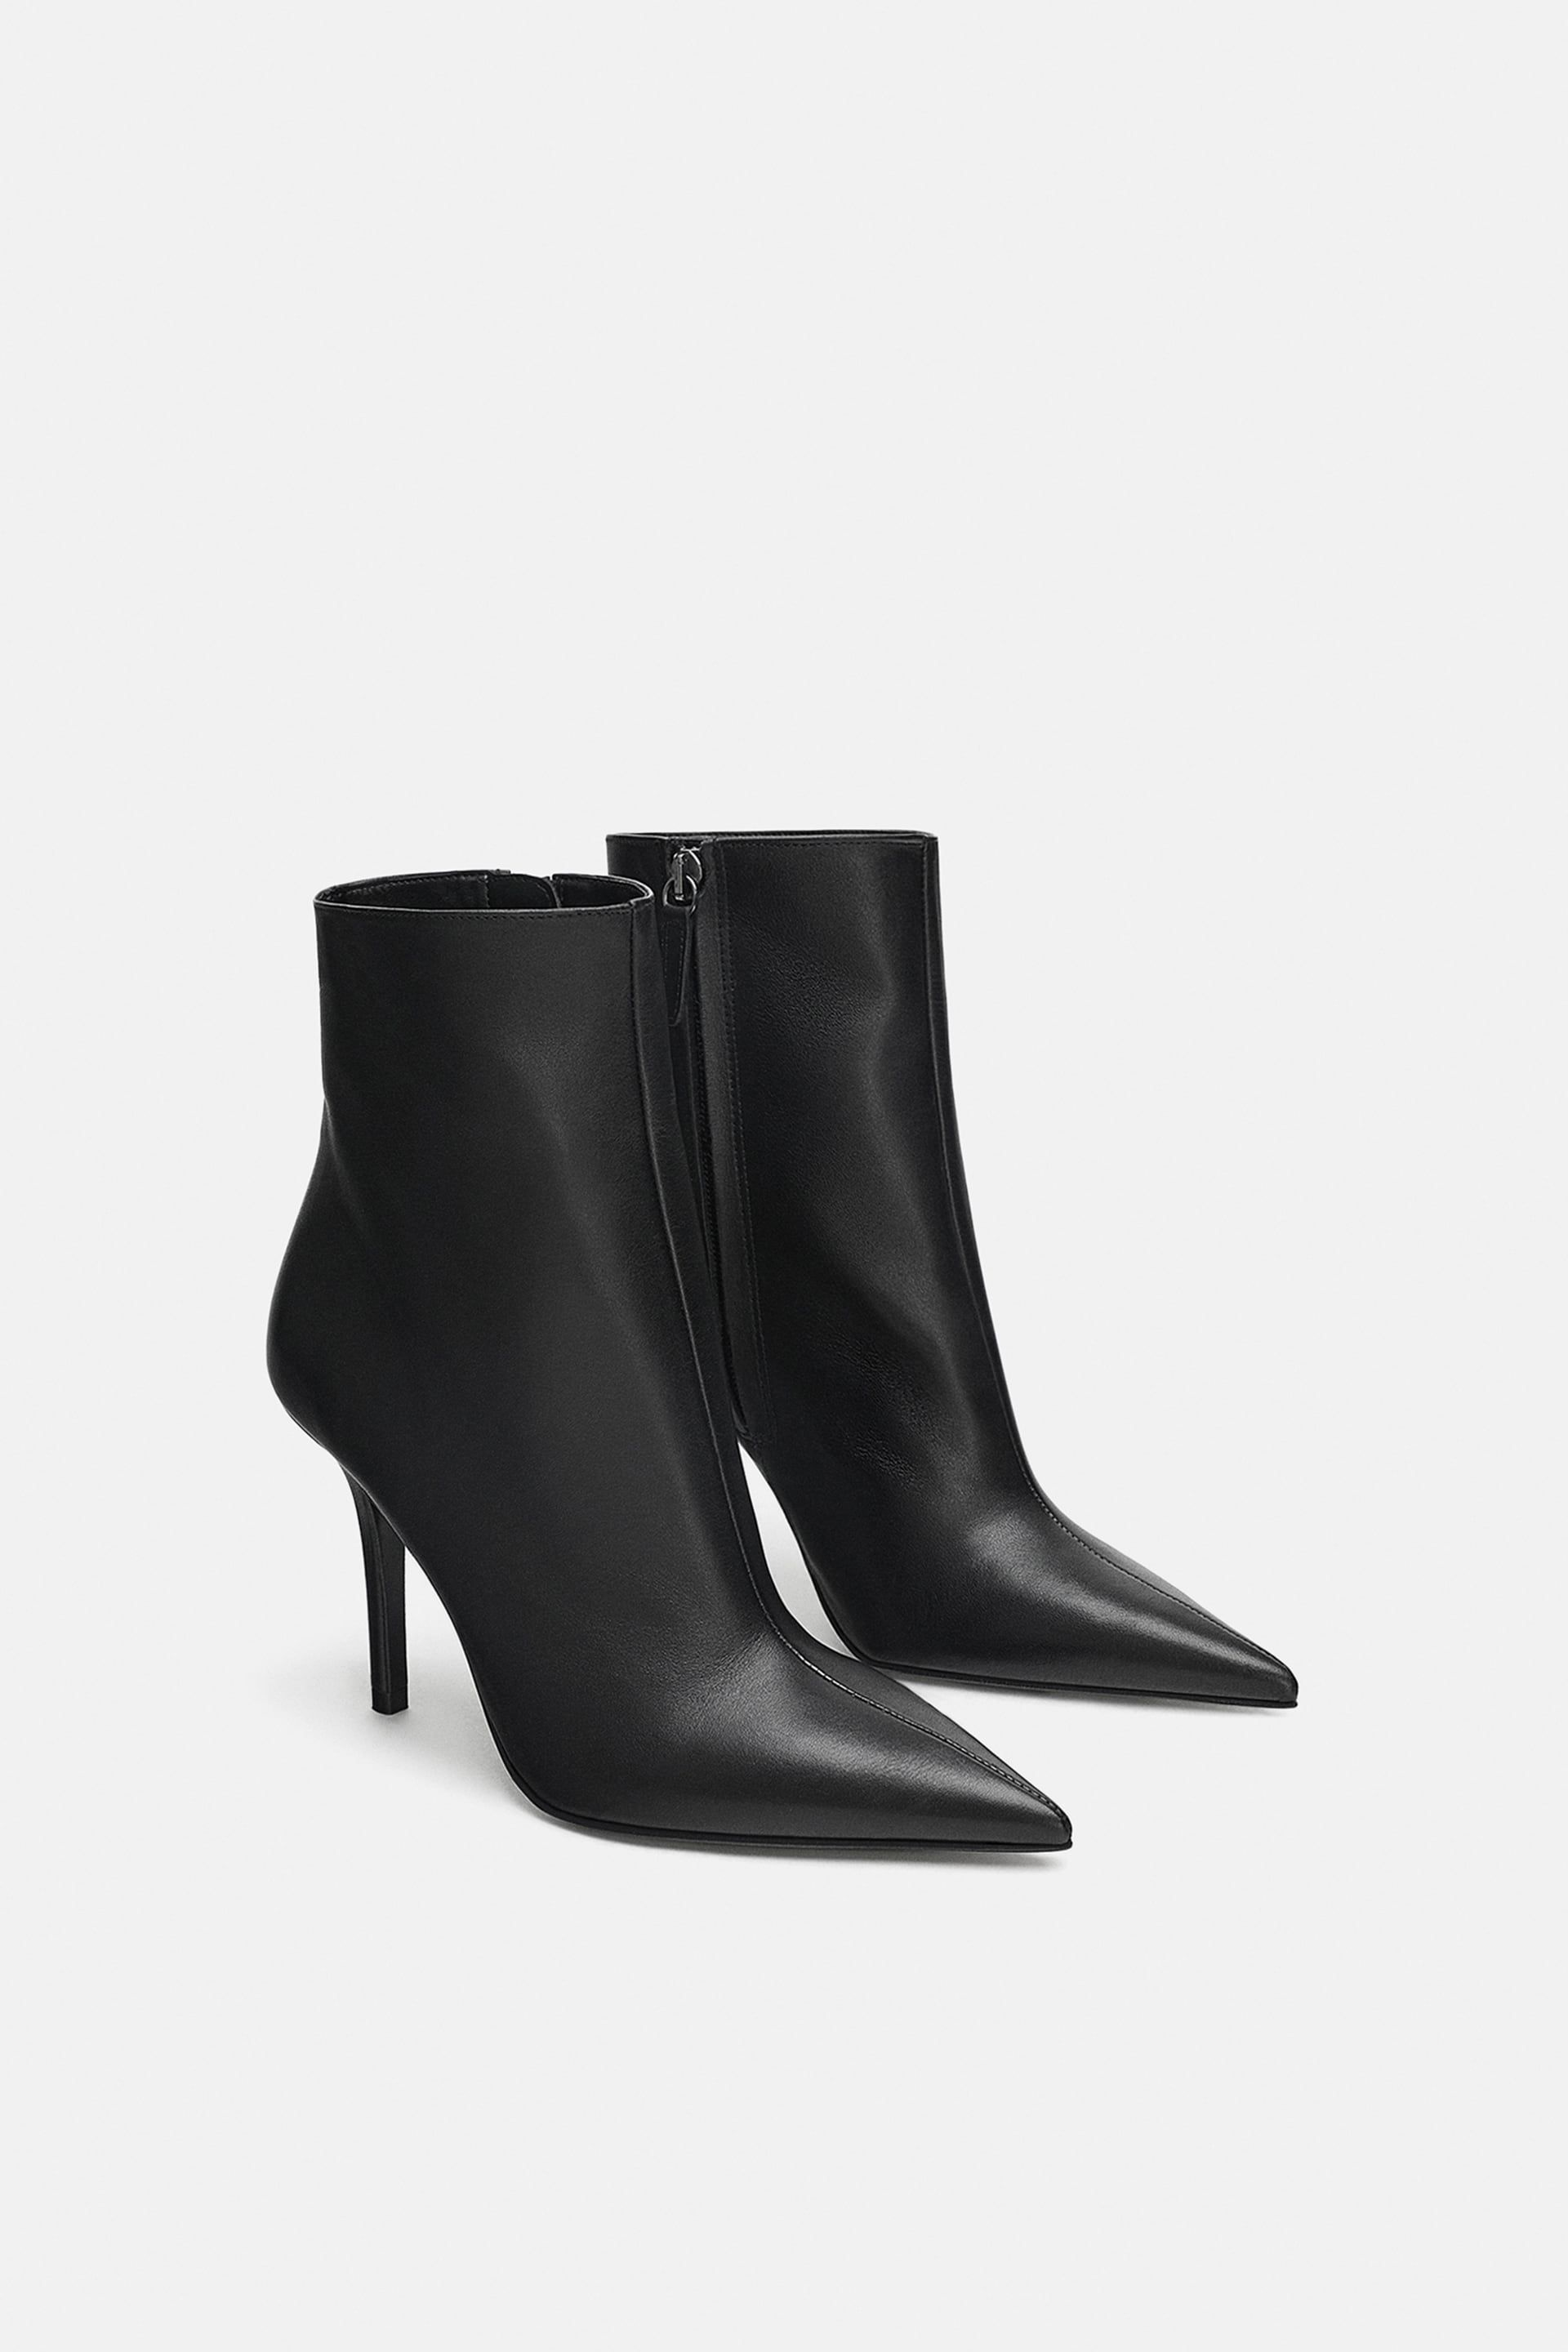 a65953a5bb699 Image 3 of LEATHER STILETTO HEELED ANKLE BOOTS from Zara